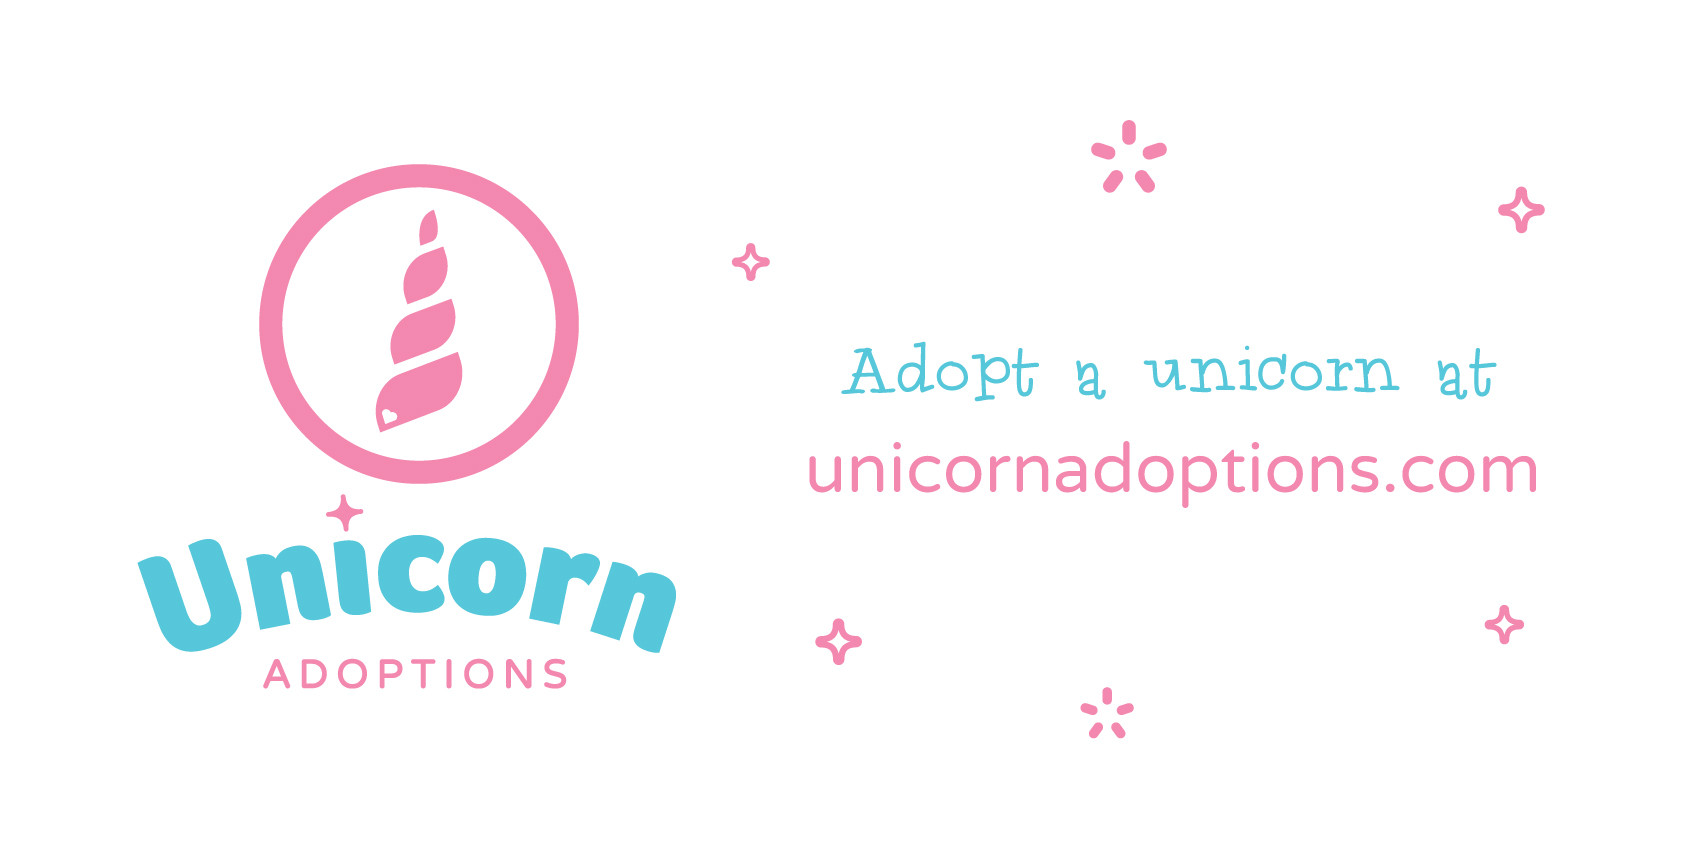 Unicorn Adoptions